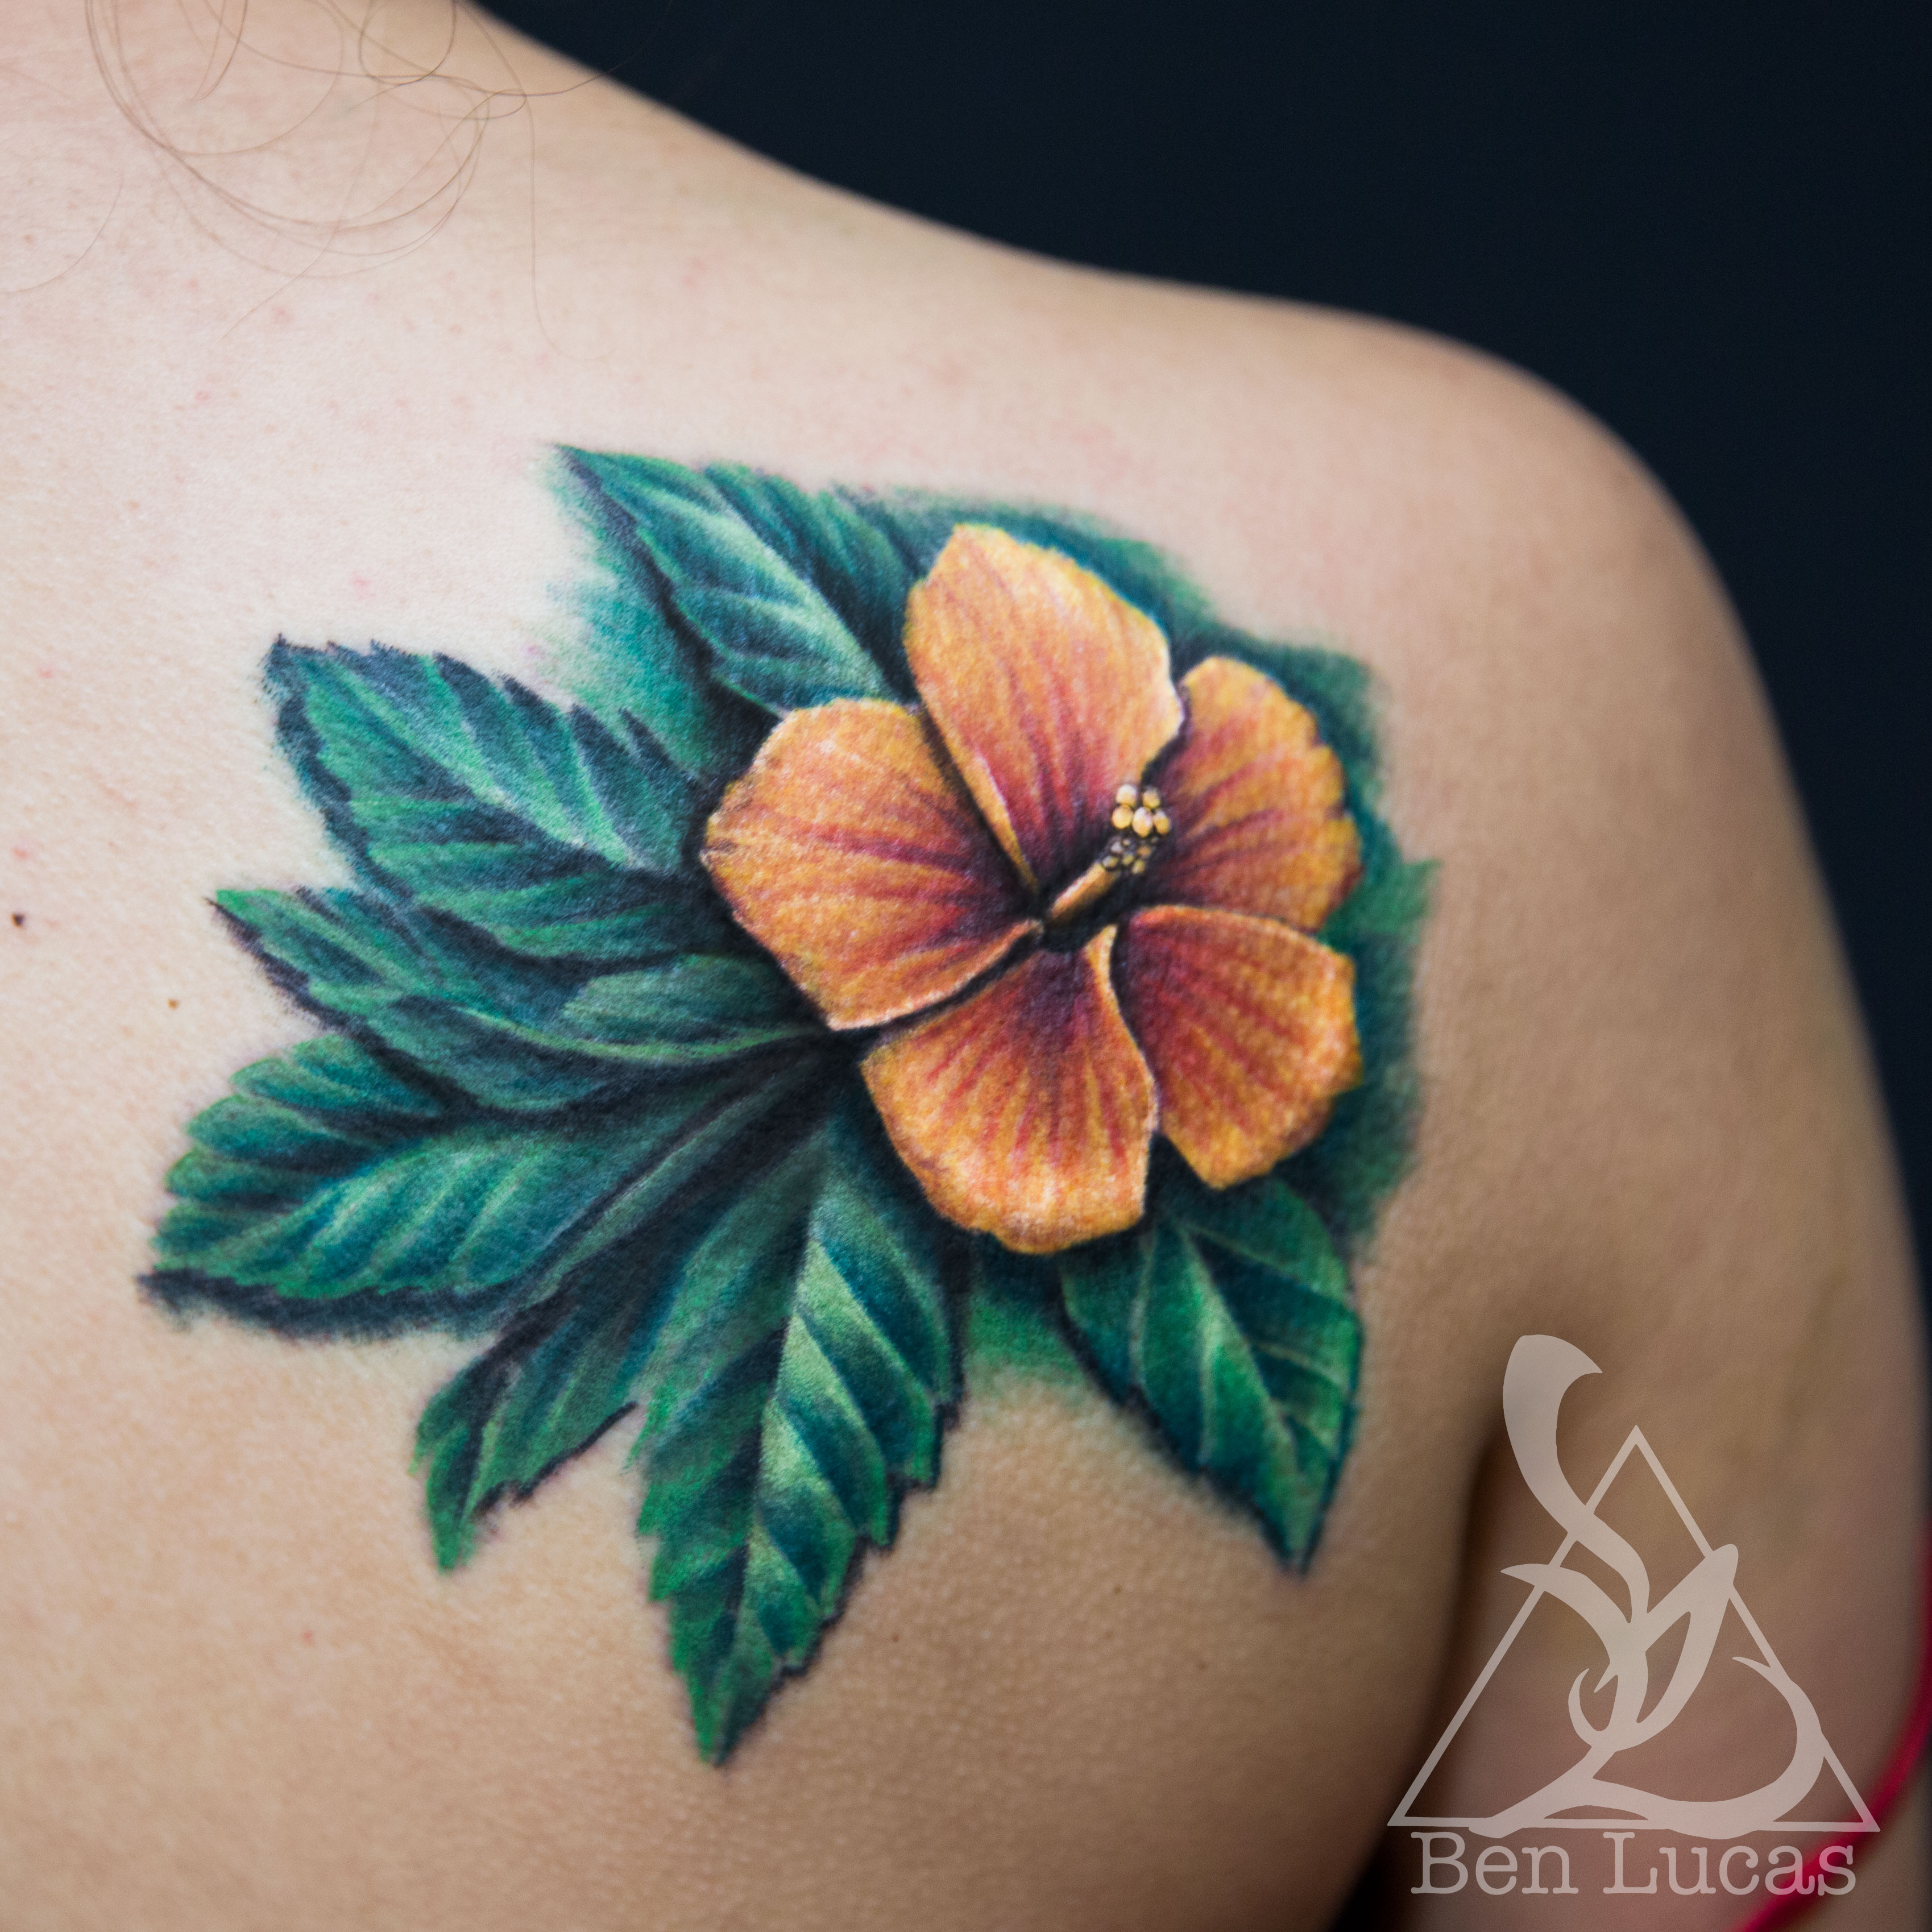 Hummingbird Shape With Tidal Wave In The Negative Space Tattoo On